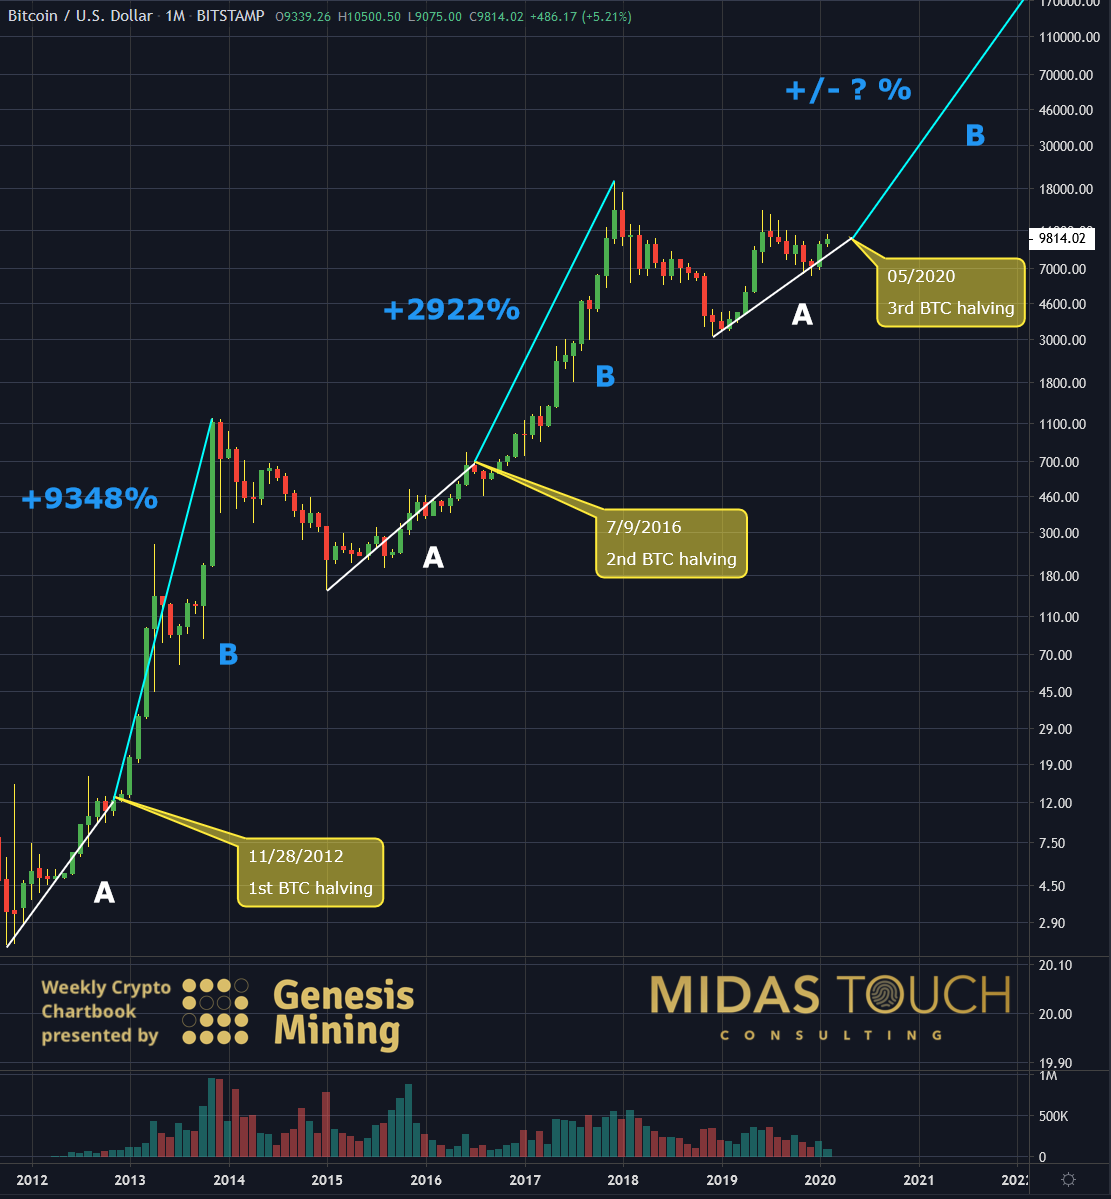 BTCUSD monthly chart as of February 18th, 2020